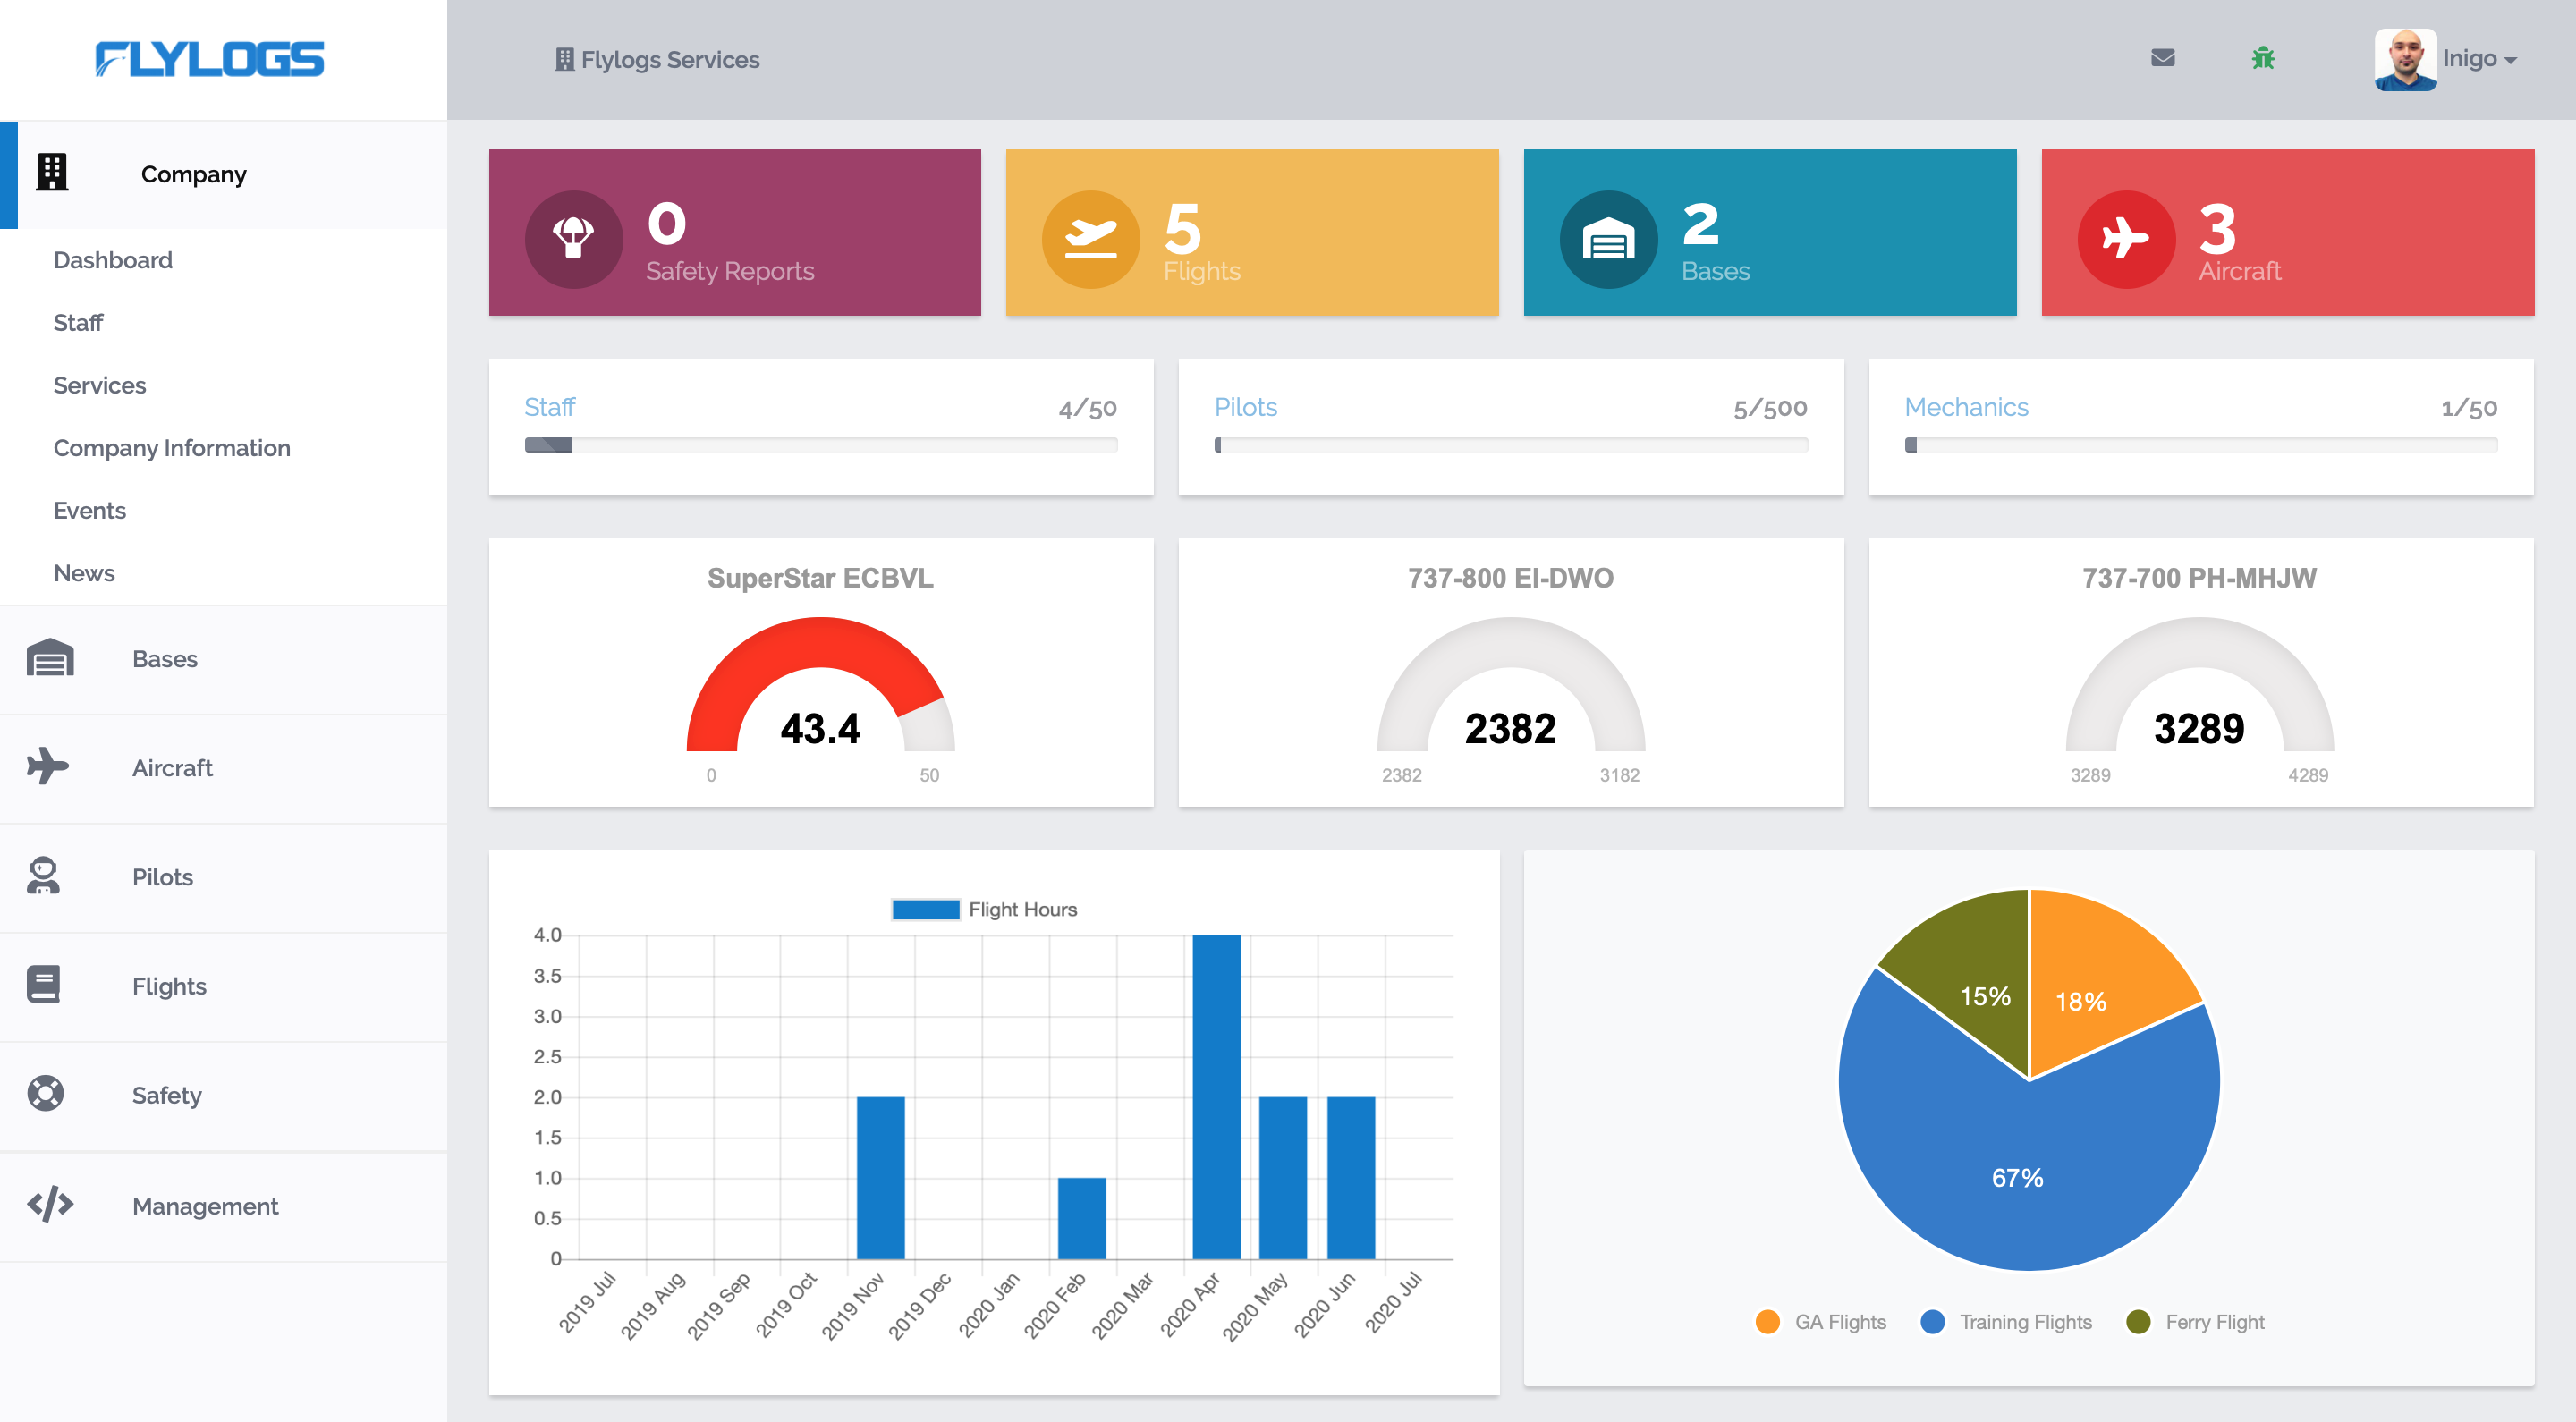 flylogs dashboard is an easy to use powerful tool